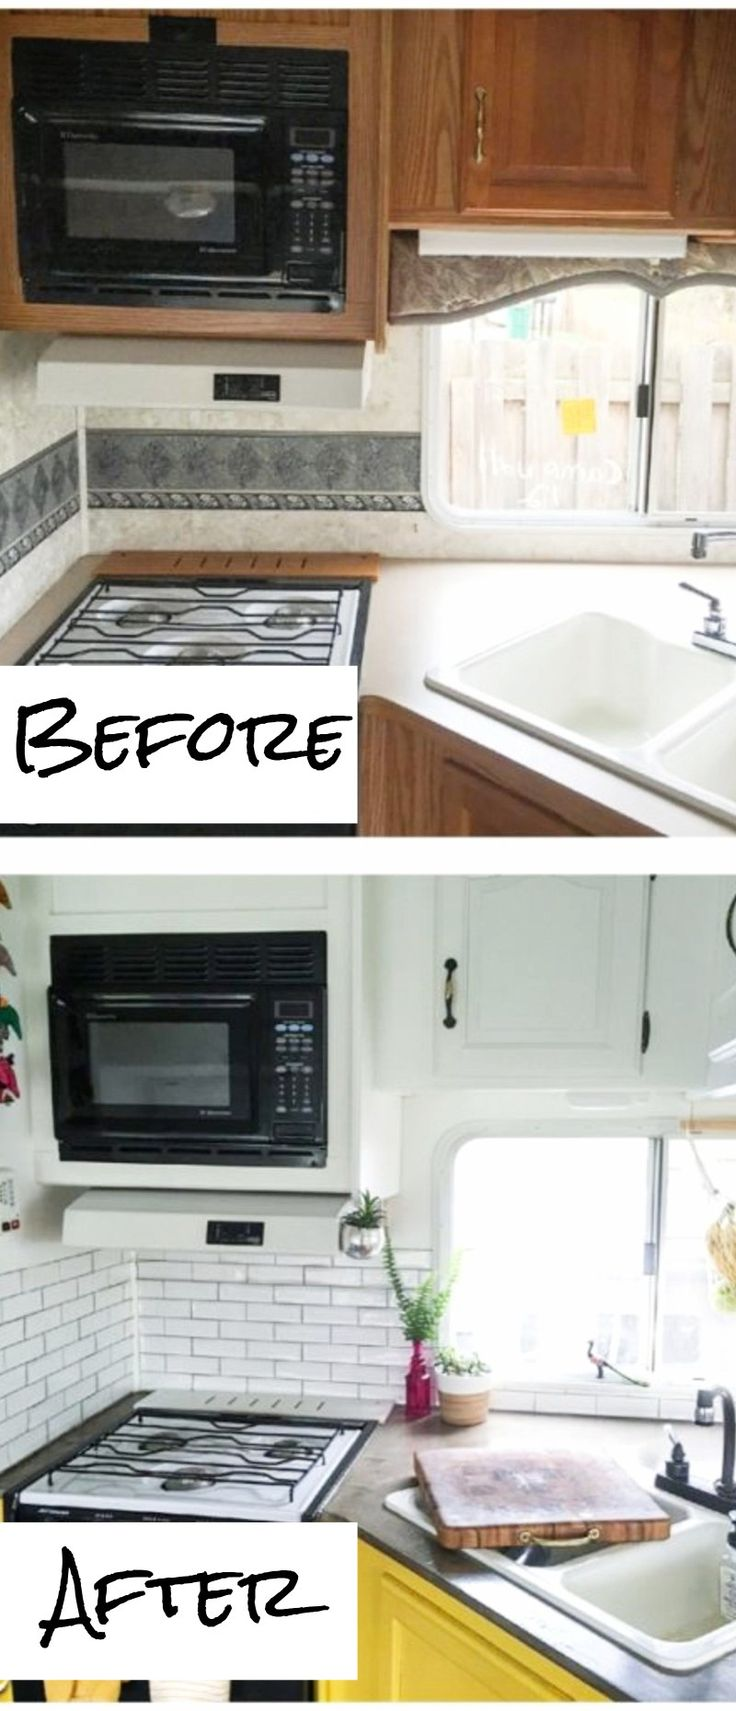 Small RV kitchen makeovers before and after - small kitchens remodel ideas and pictures